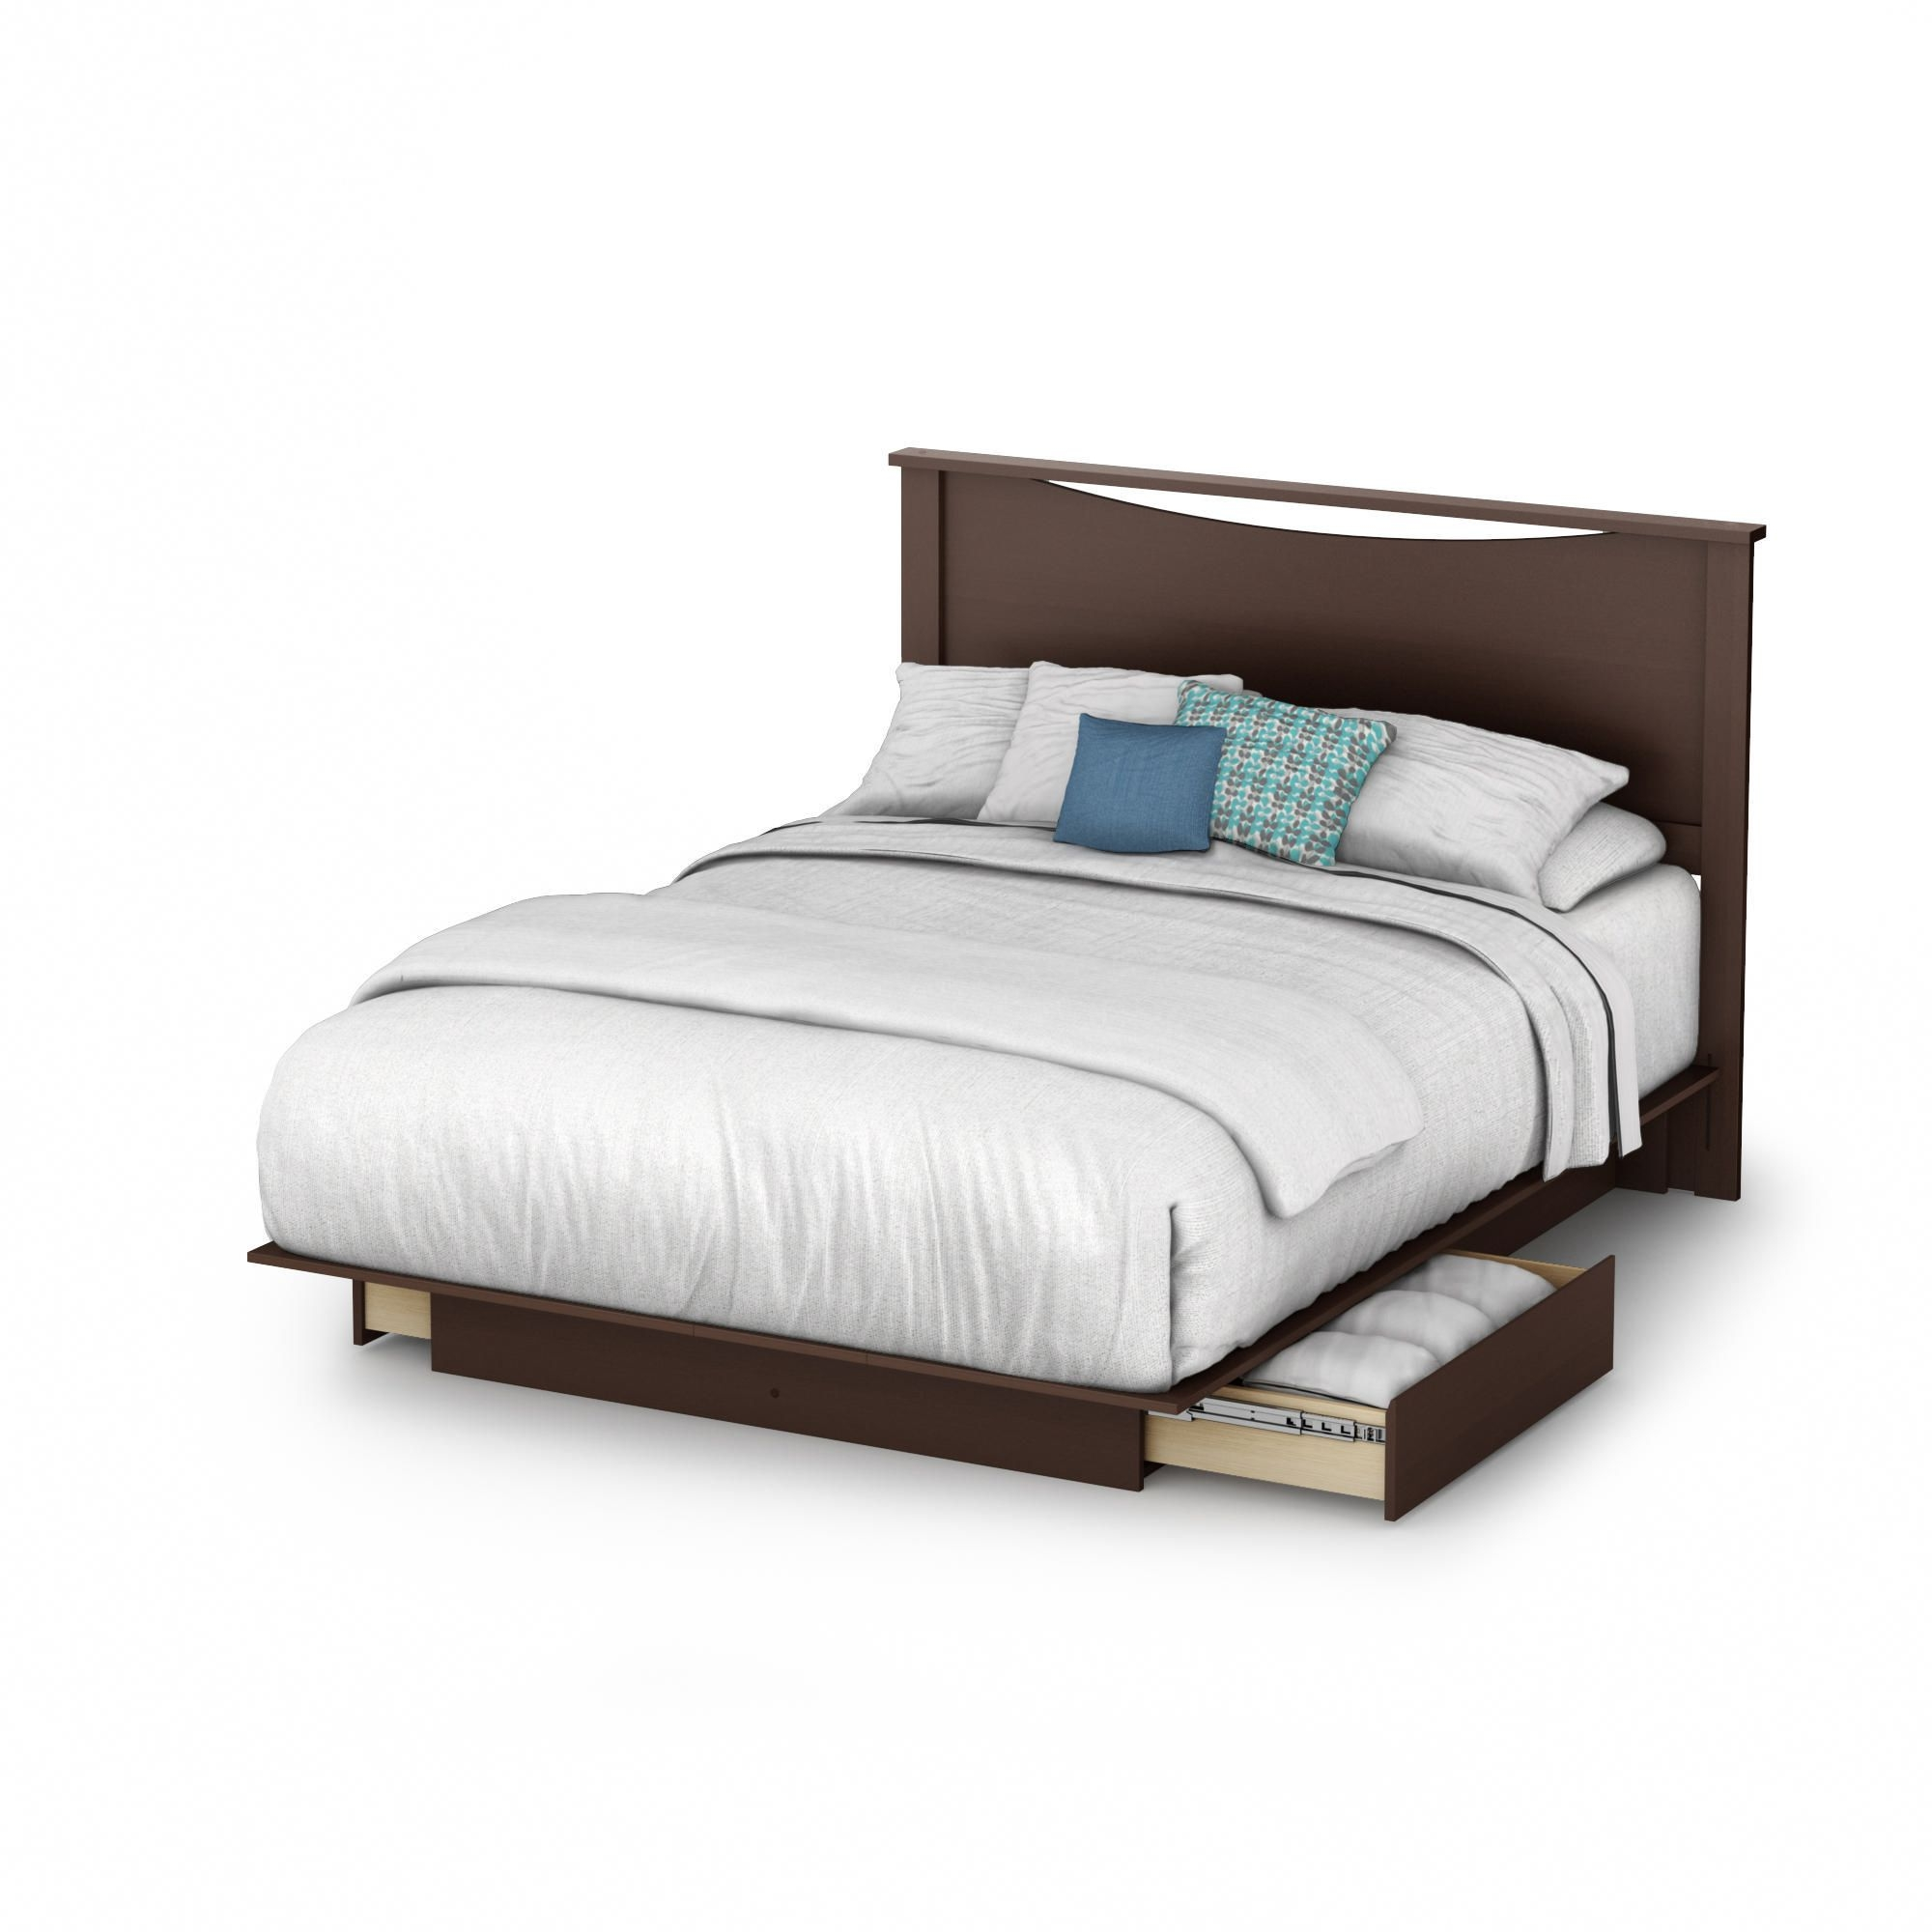 Soho King Bed Frame